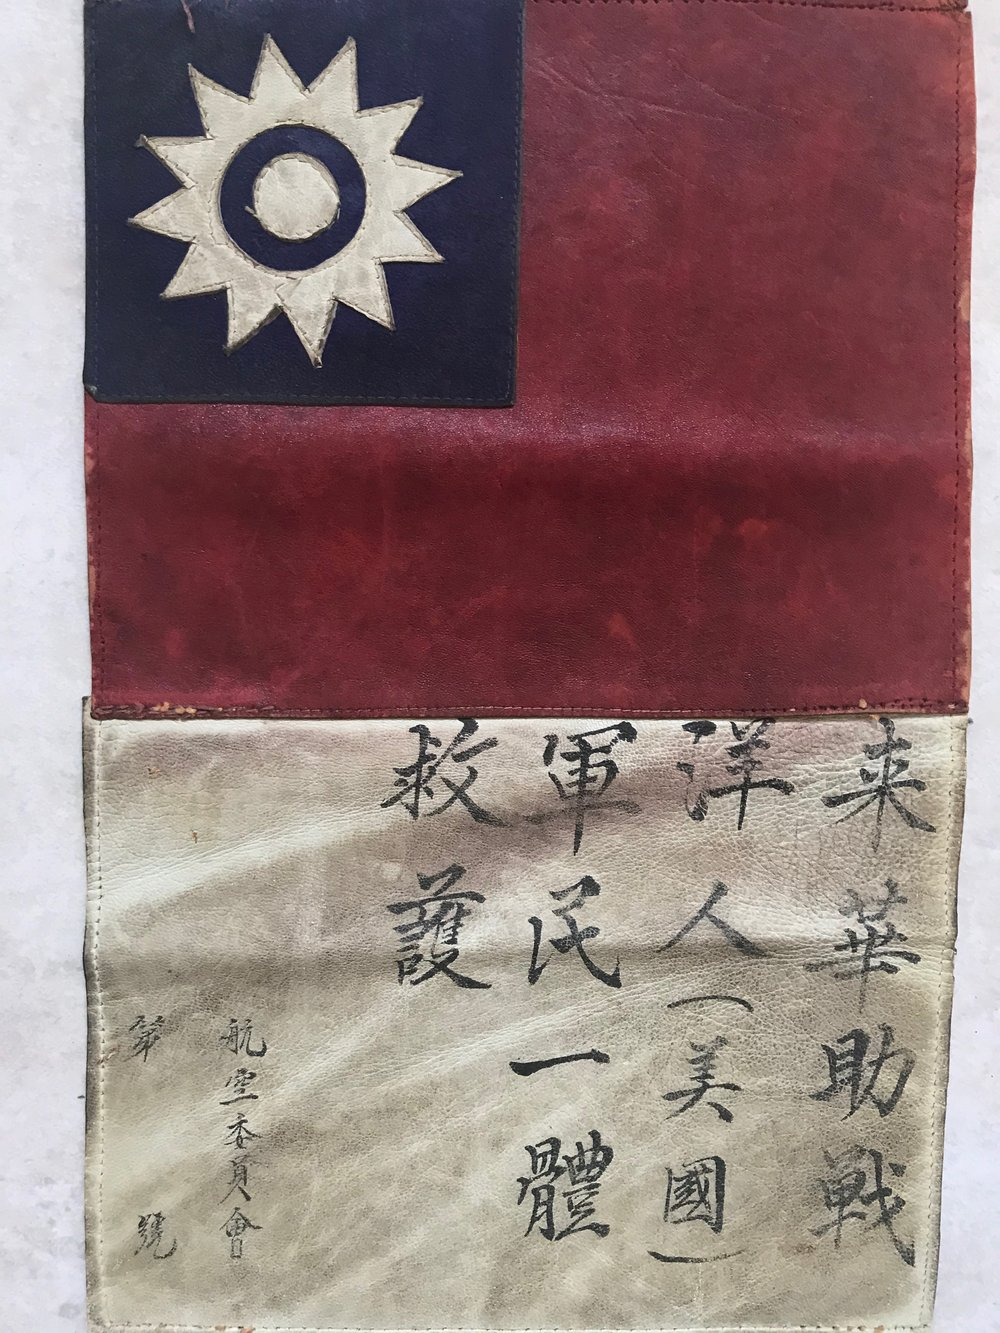 """Leather flag (7-1/2"""" x 11-1/2"""") and friendly message sewn onto every flight jacket of the 58th Bomb Wing in WWII in case crews were shot down over China ~ from jacket of Capt. Henry W.F. Chin, U.S. Army Air Corps"""